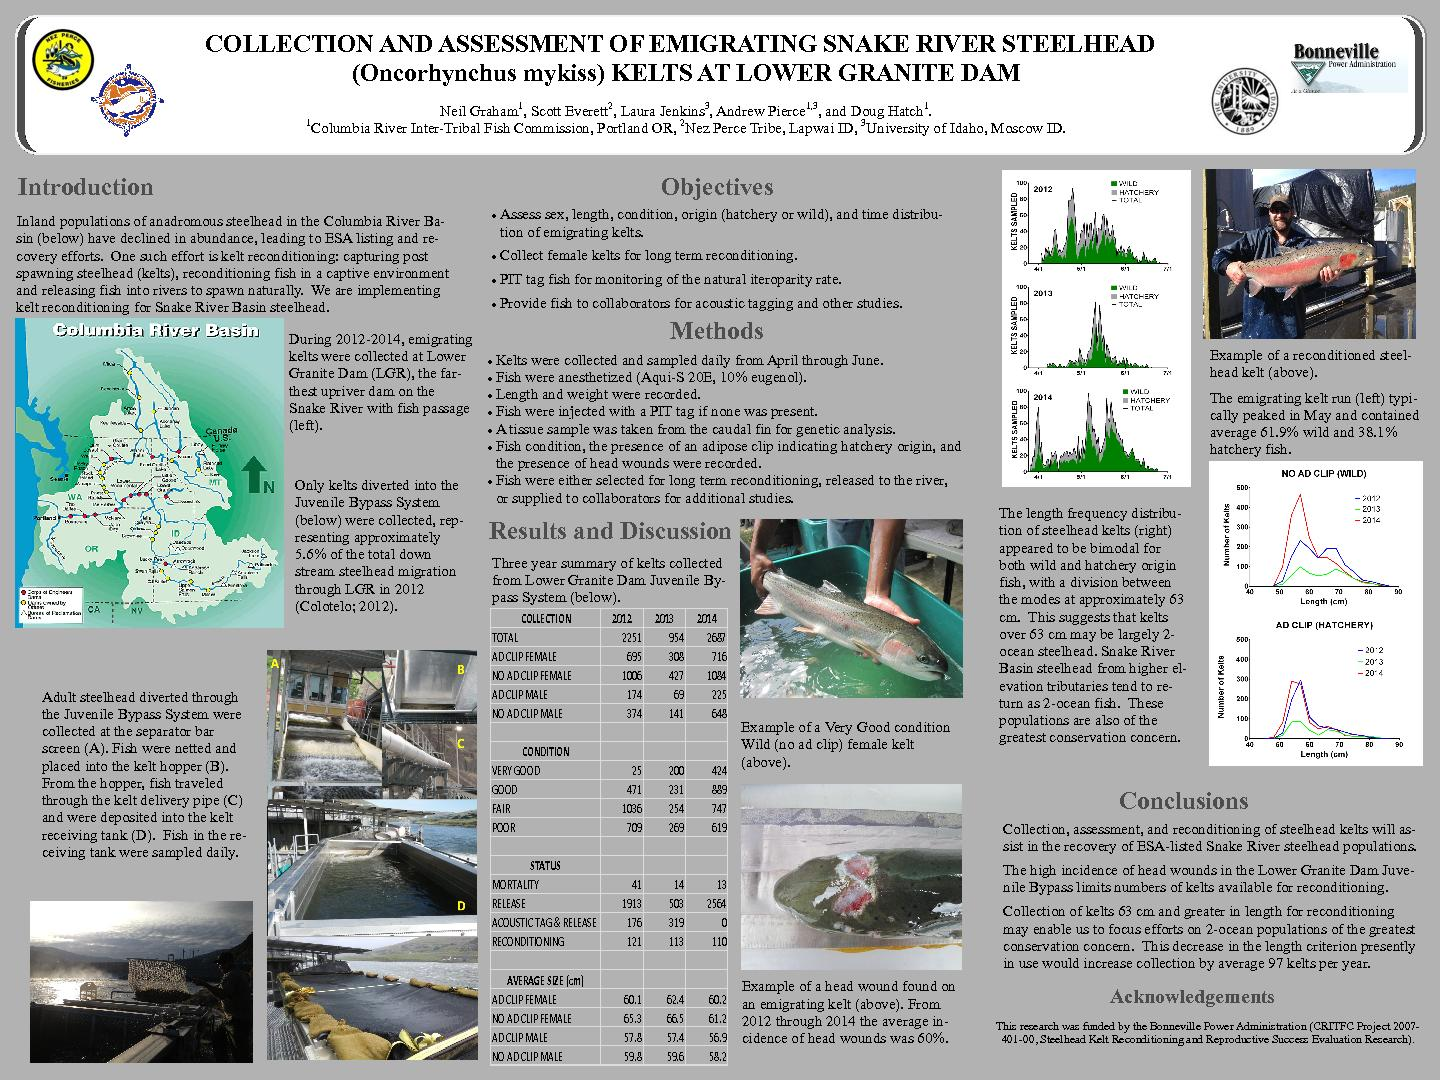 COLLECTION AND ASSESSMENT OF EMIGRATING SNAKE RIVER STEELHEAD  ...